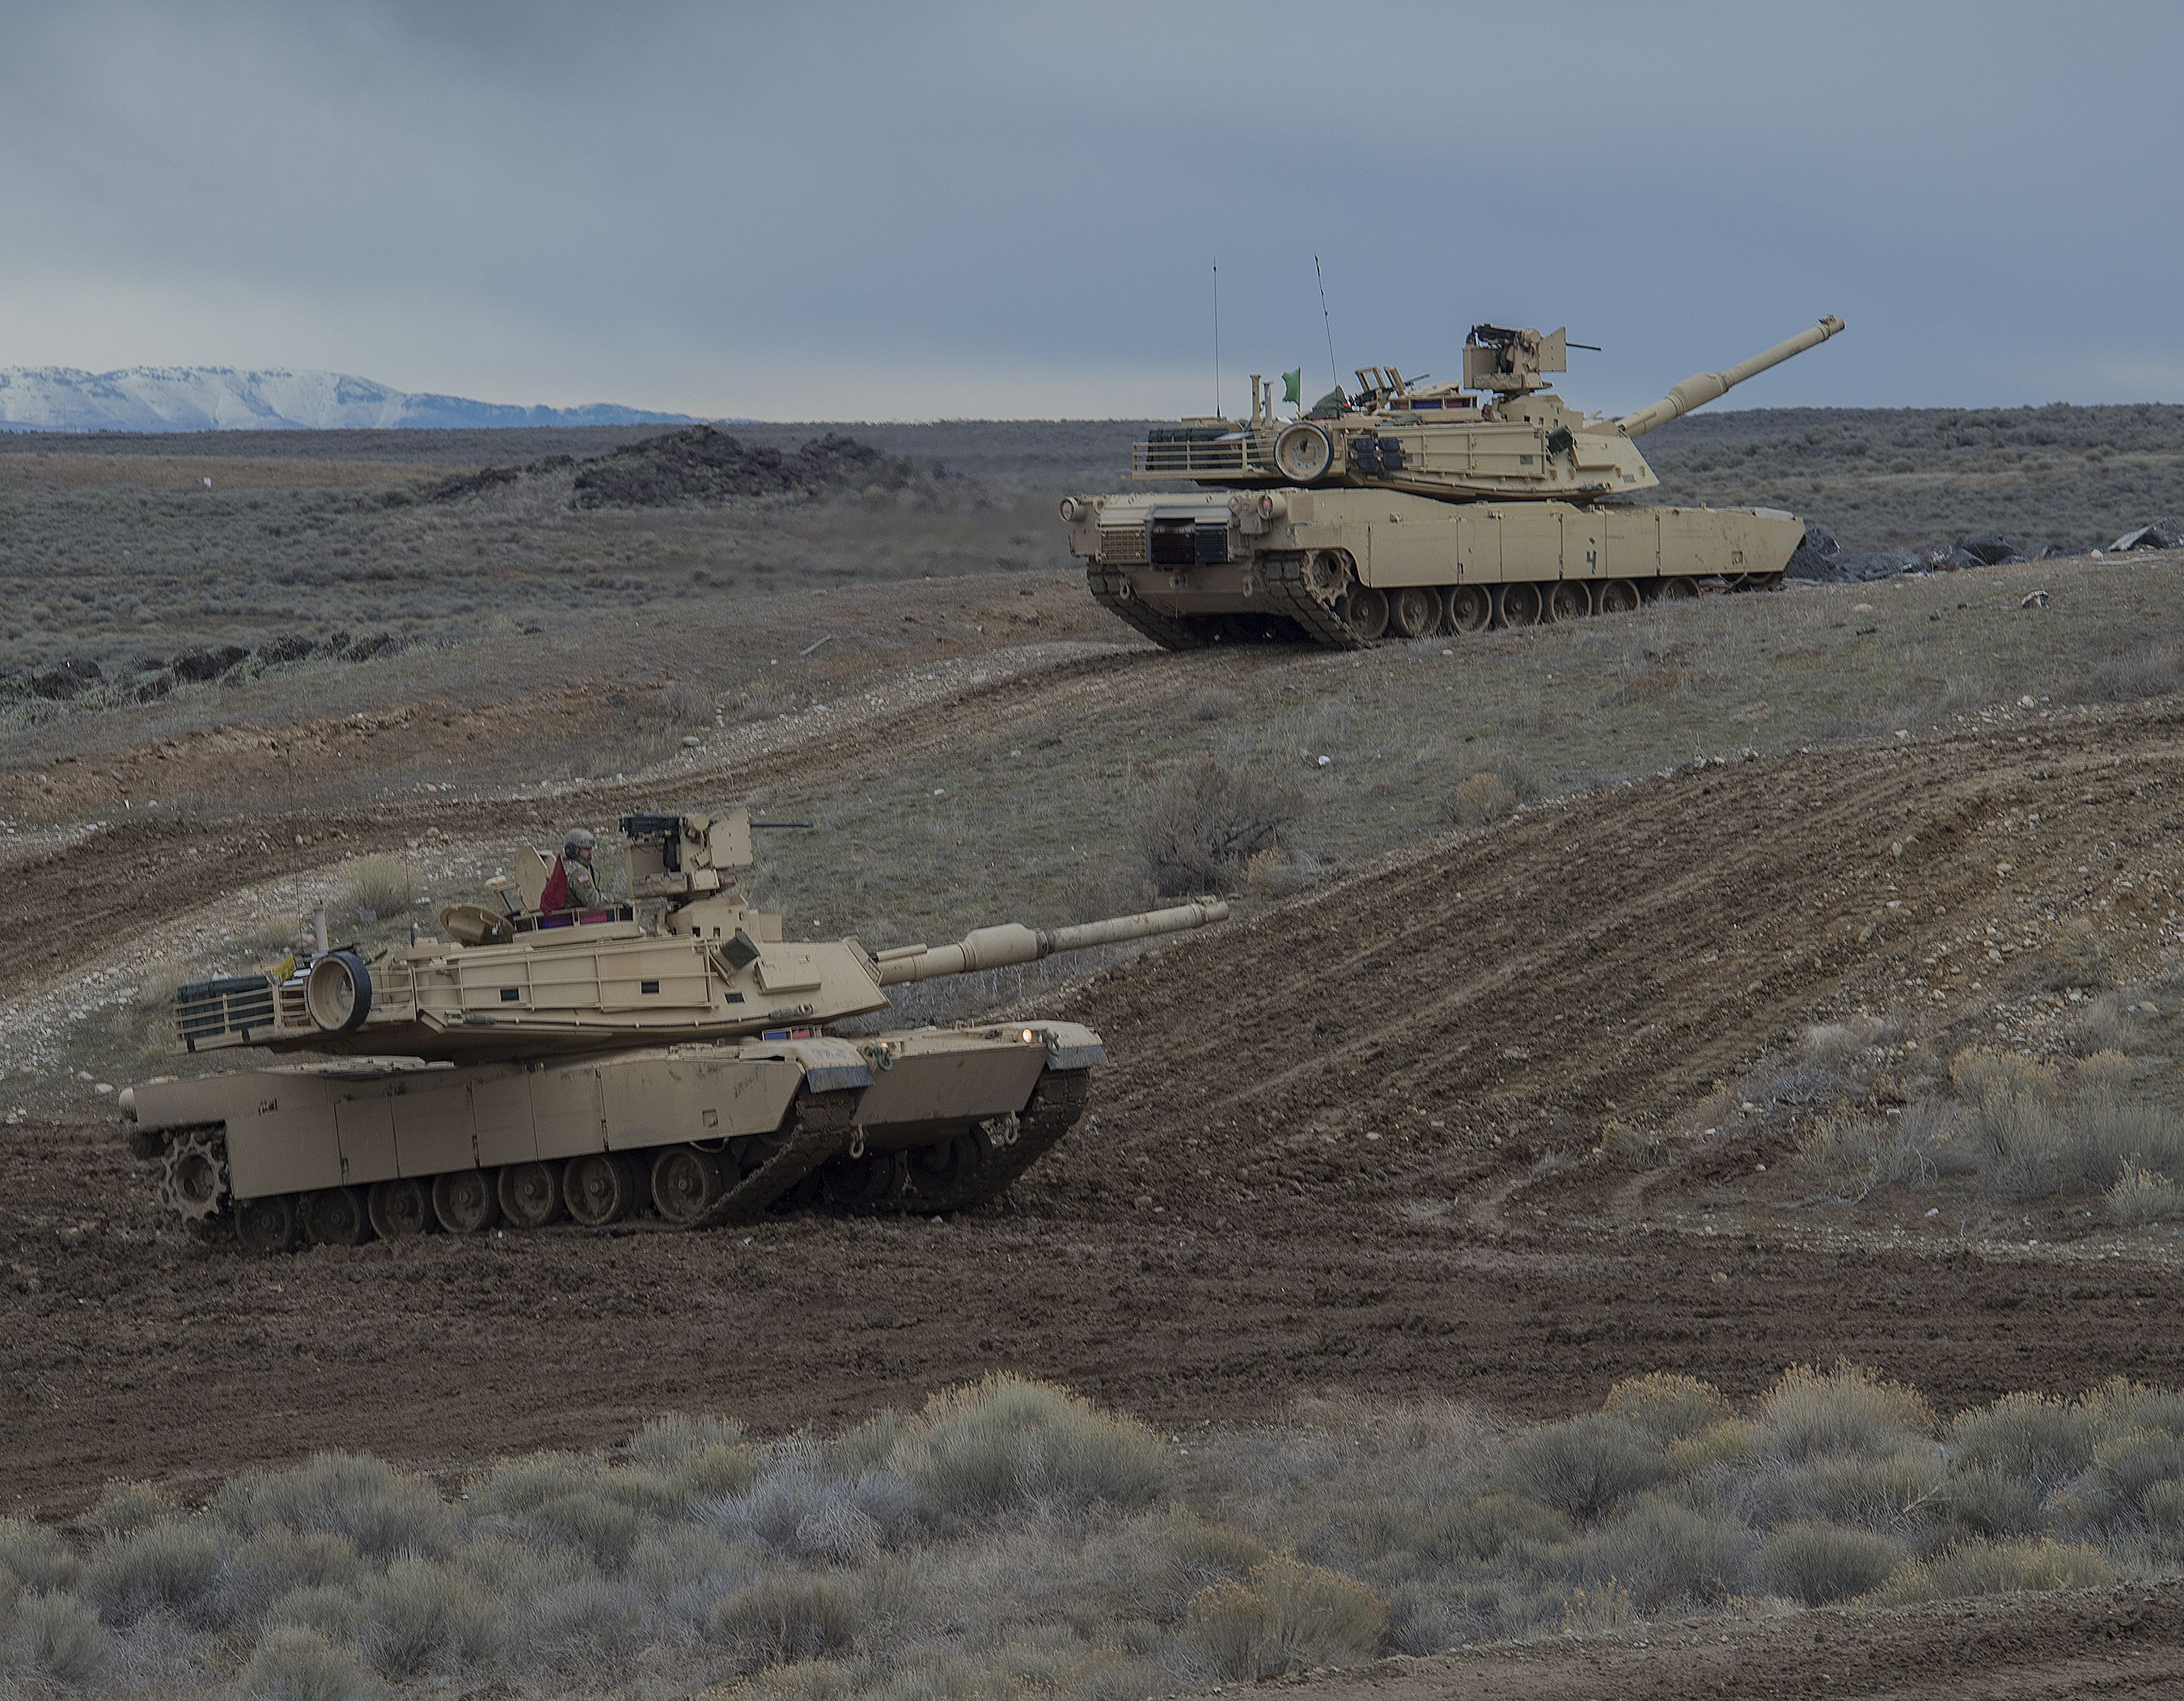 Future Tanks Could Be Powered by Electricity